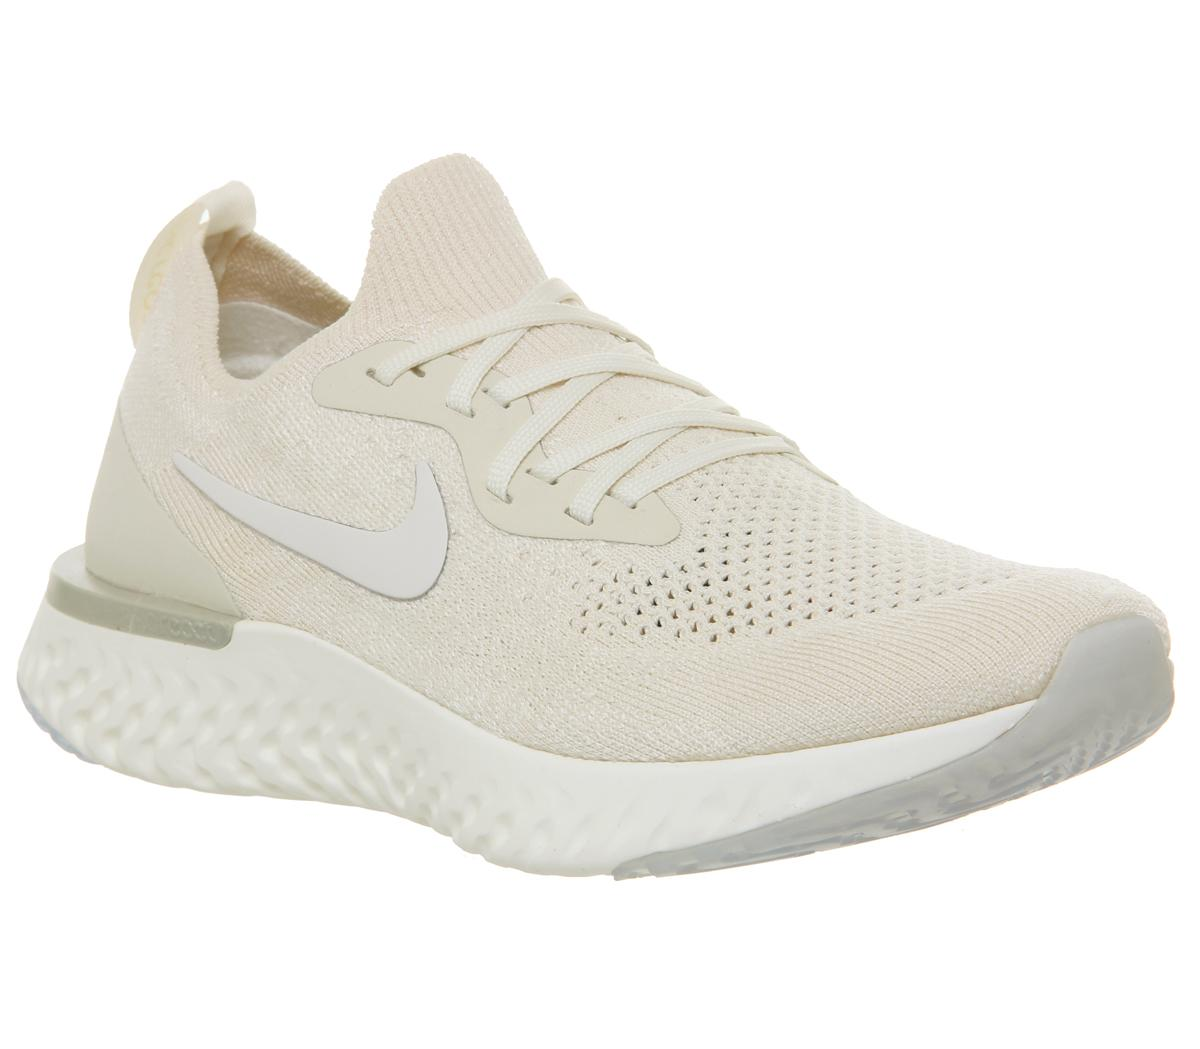 Nike Epic React Flyknit Trainers Light